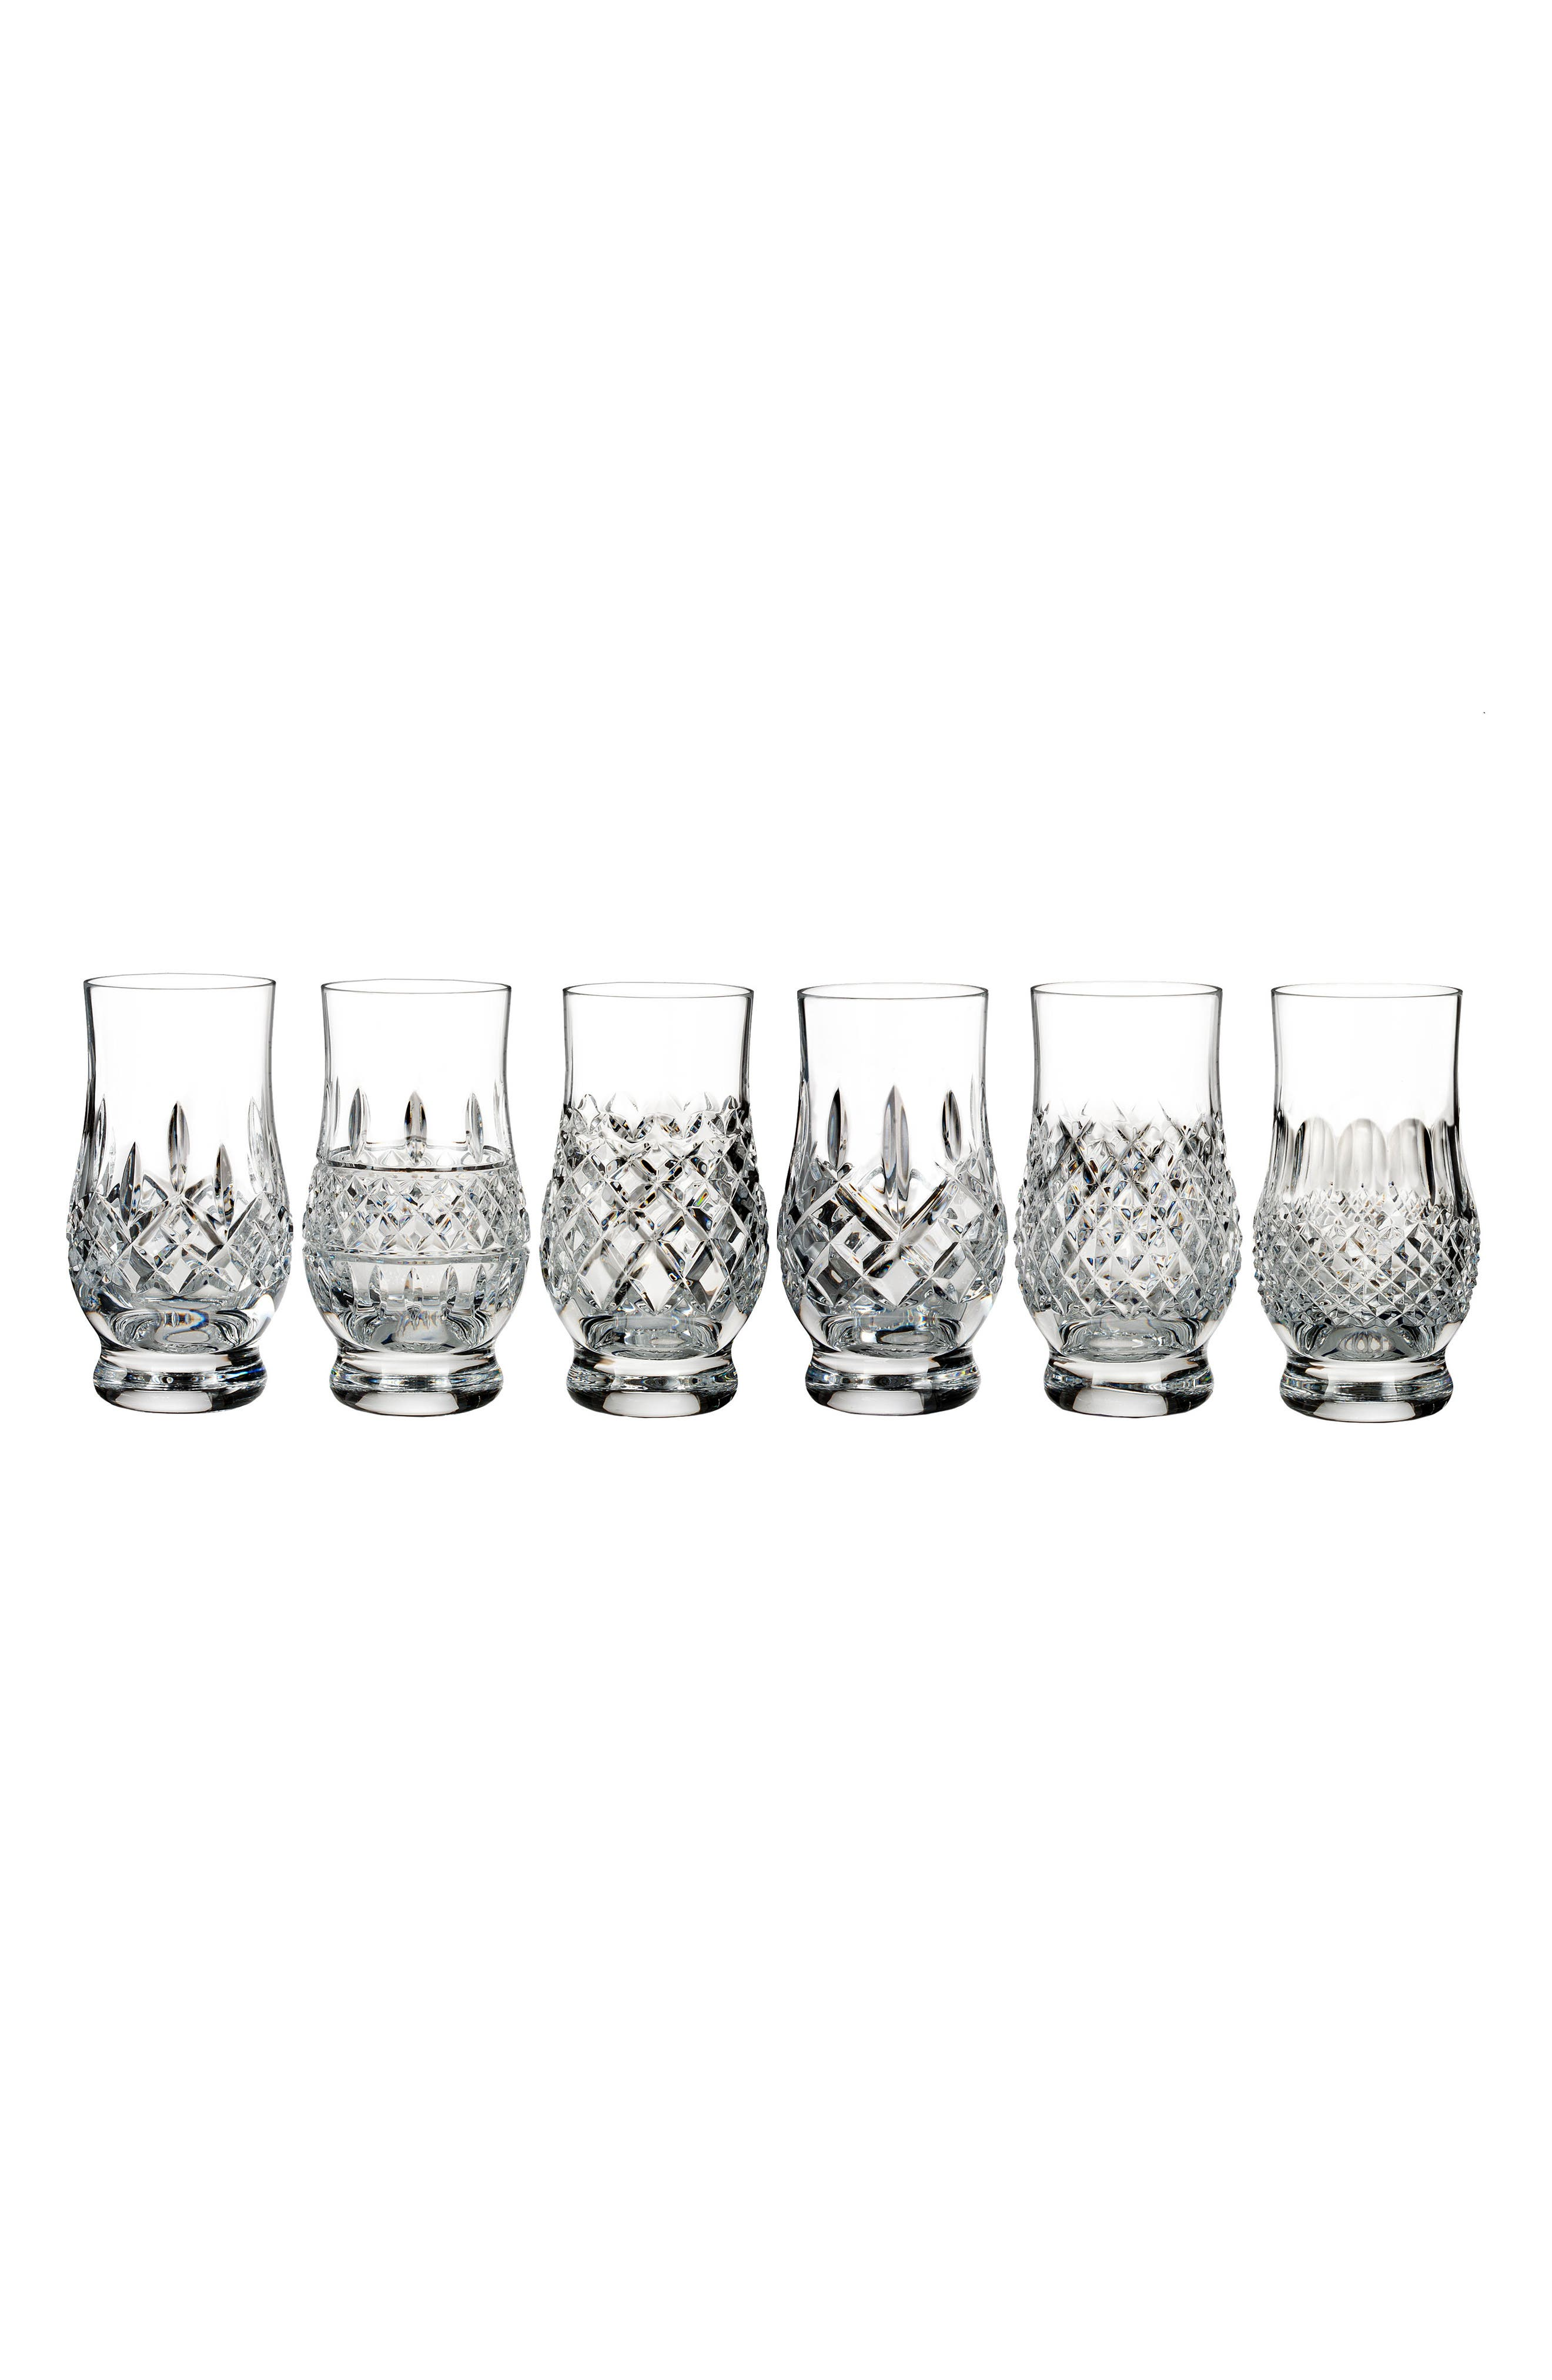 Waterford Connoisseur Set of 6 Footed Lead Crystal Tumblers